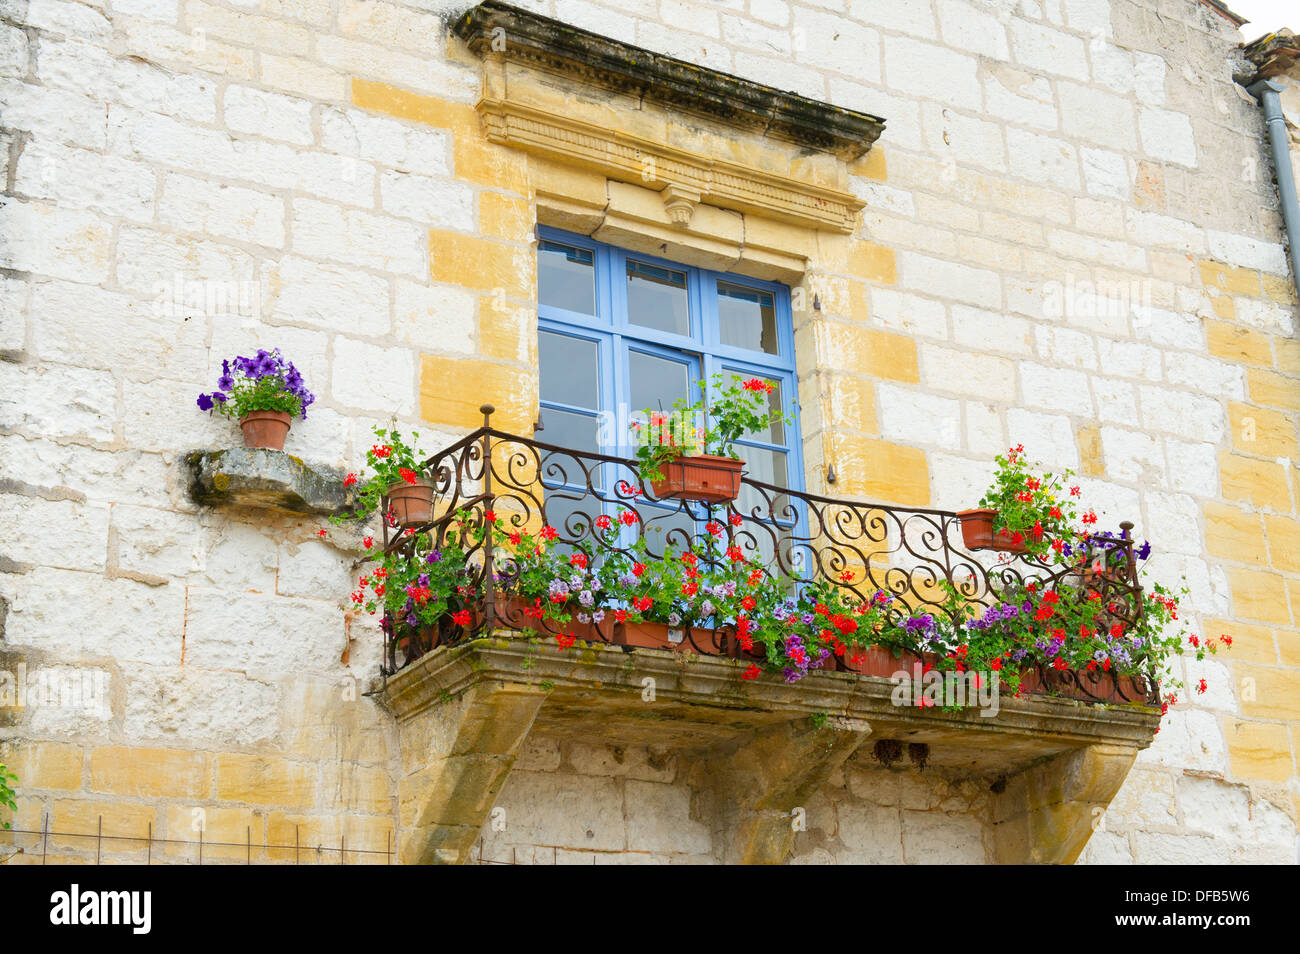 French balcony with flowers stock photo royalty free for What is a french balcony